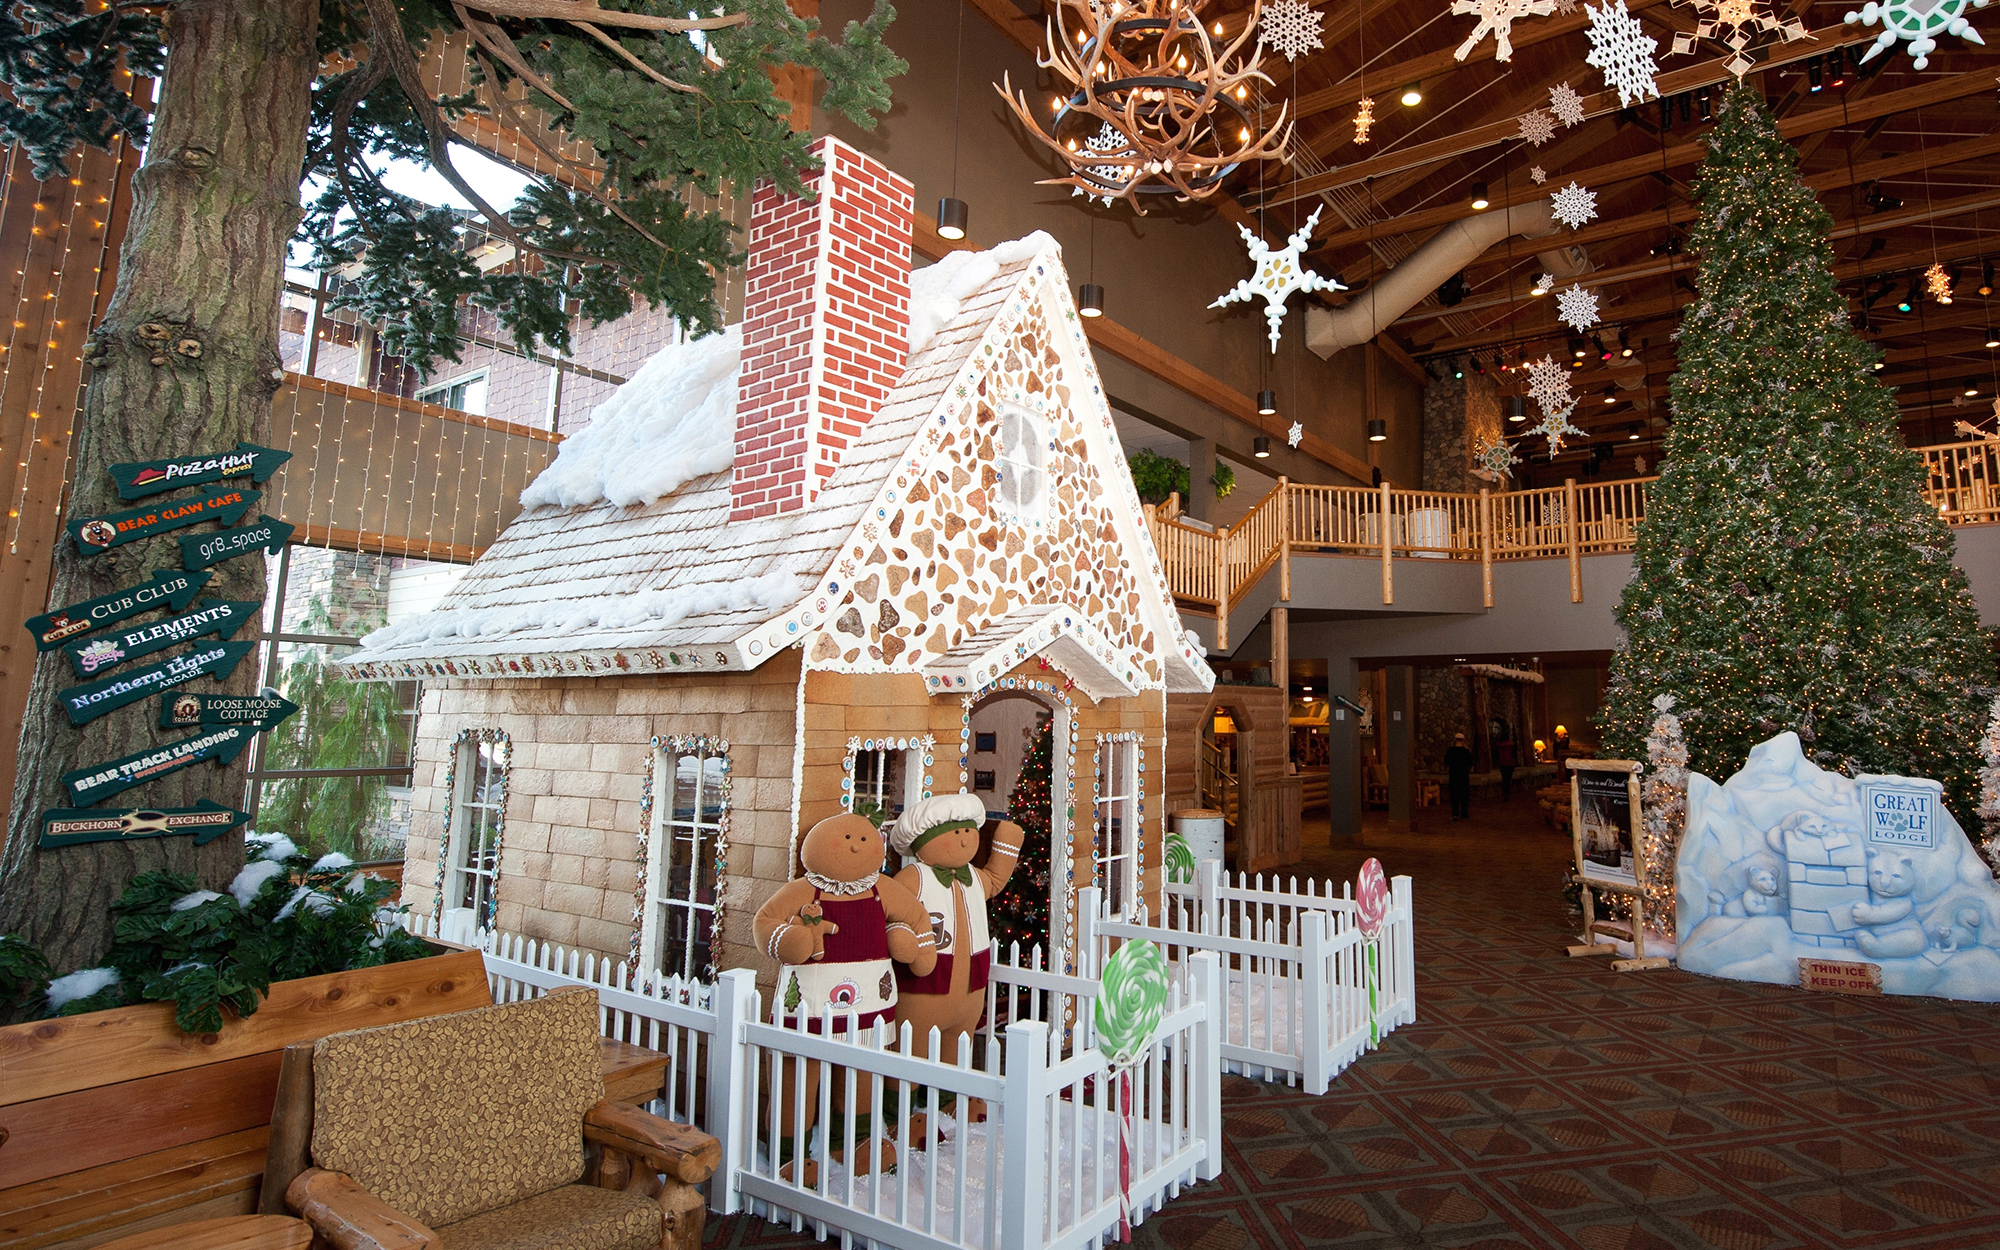 The Best Hotel Gingerbread Houses: Great Wolf Lodge, North America